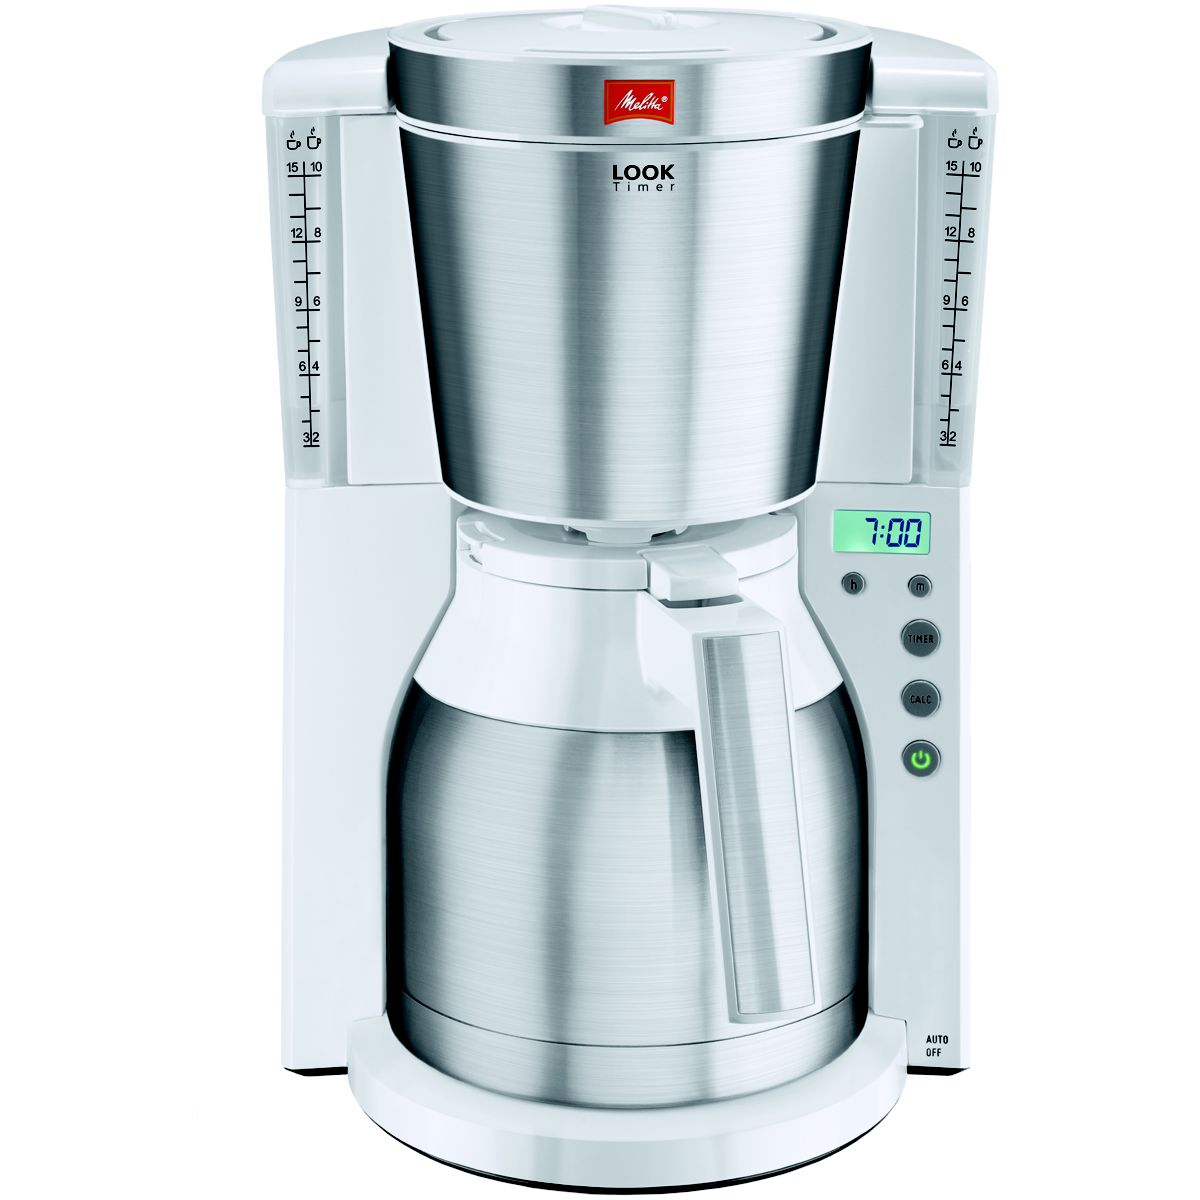 Caf-Thermos MELITTA LOOK IV THERM TIMER (photo)